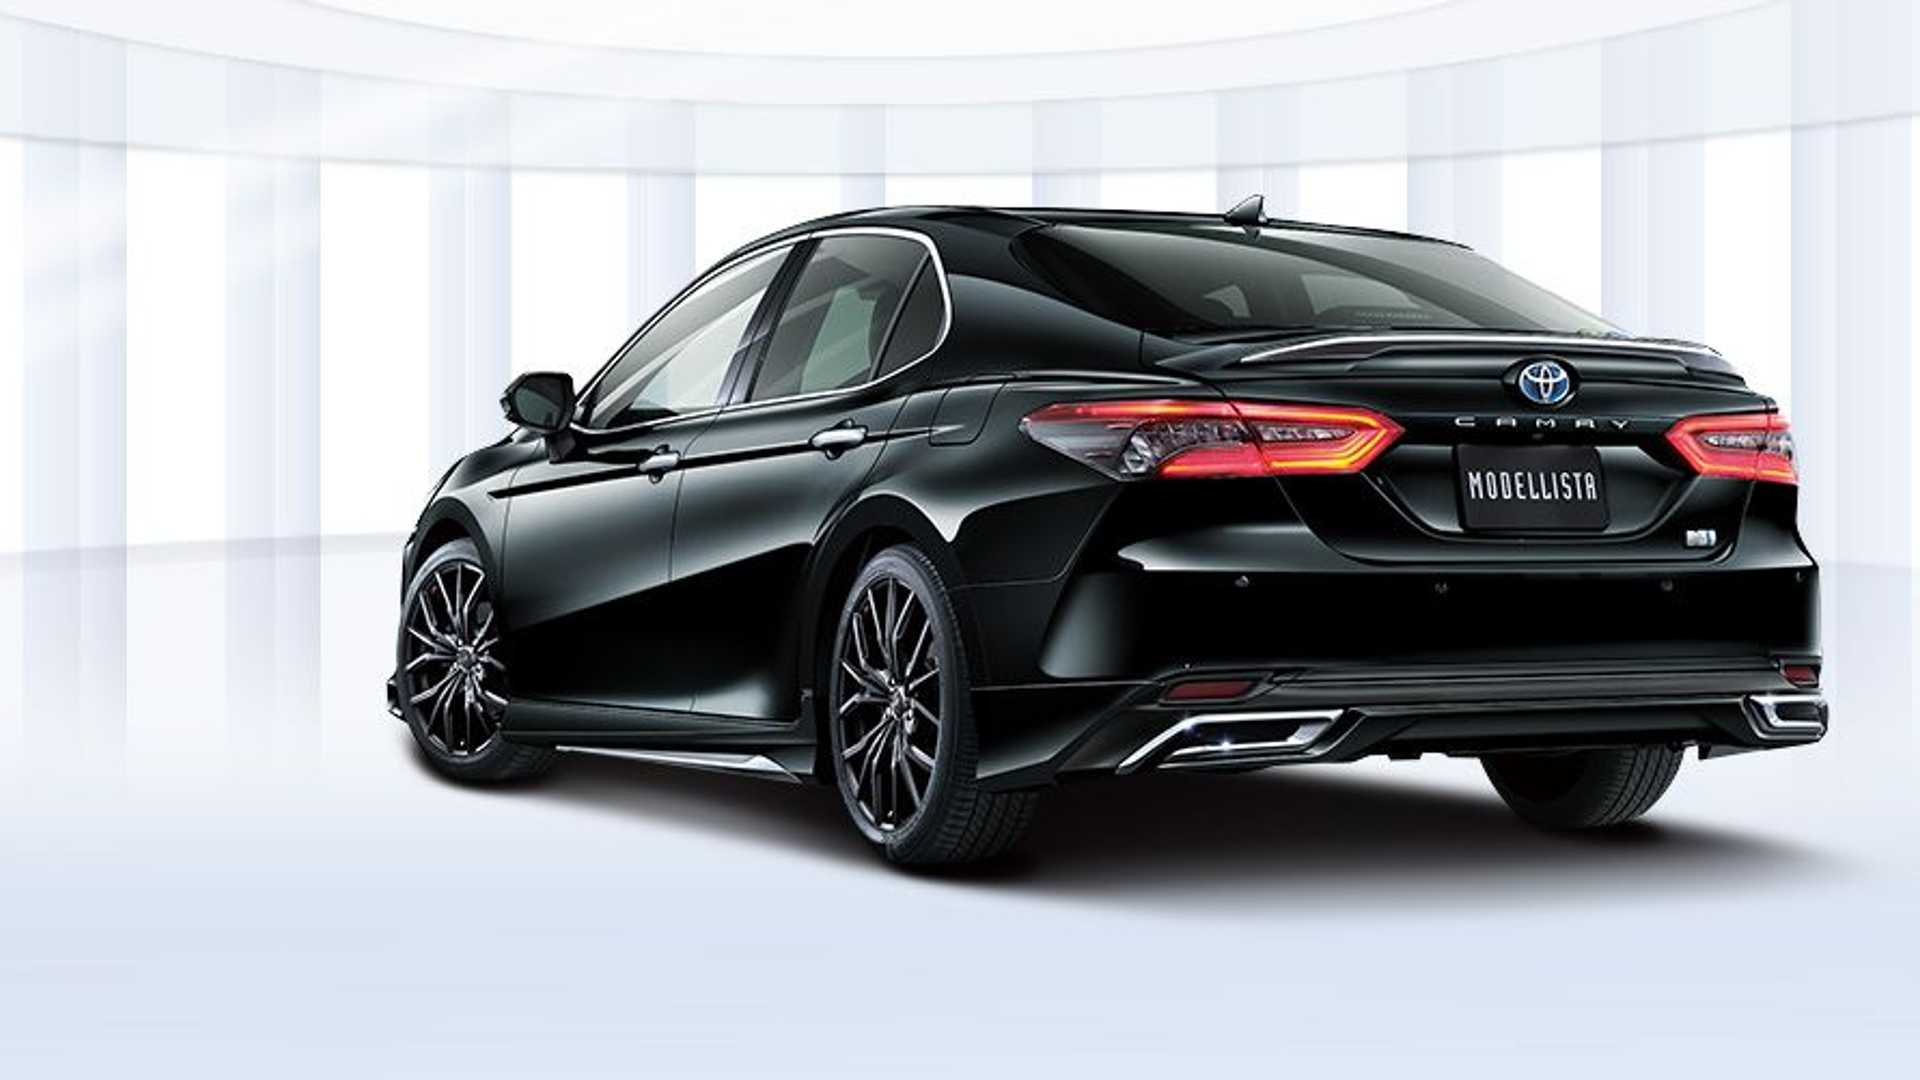 toyota-camry-modellista-black-rear-three-quarters